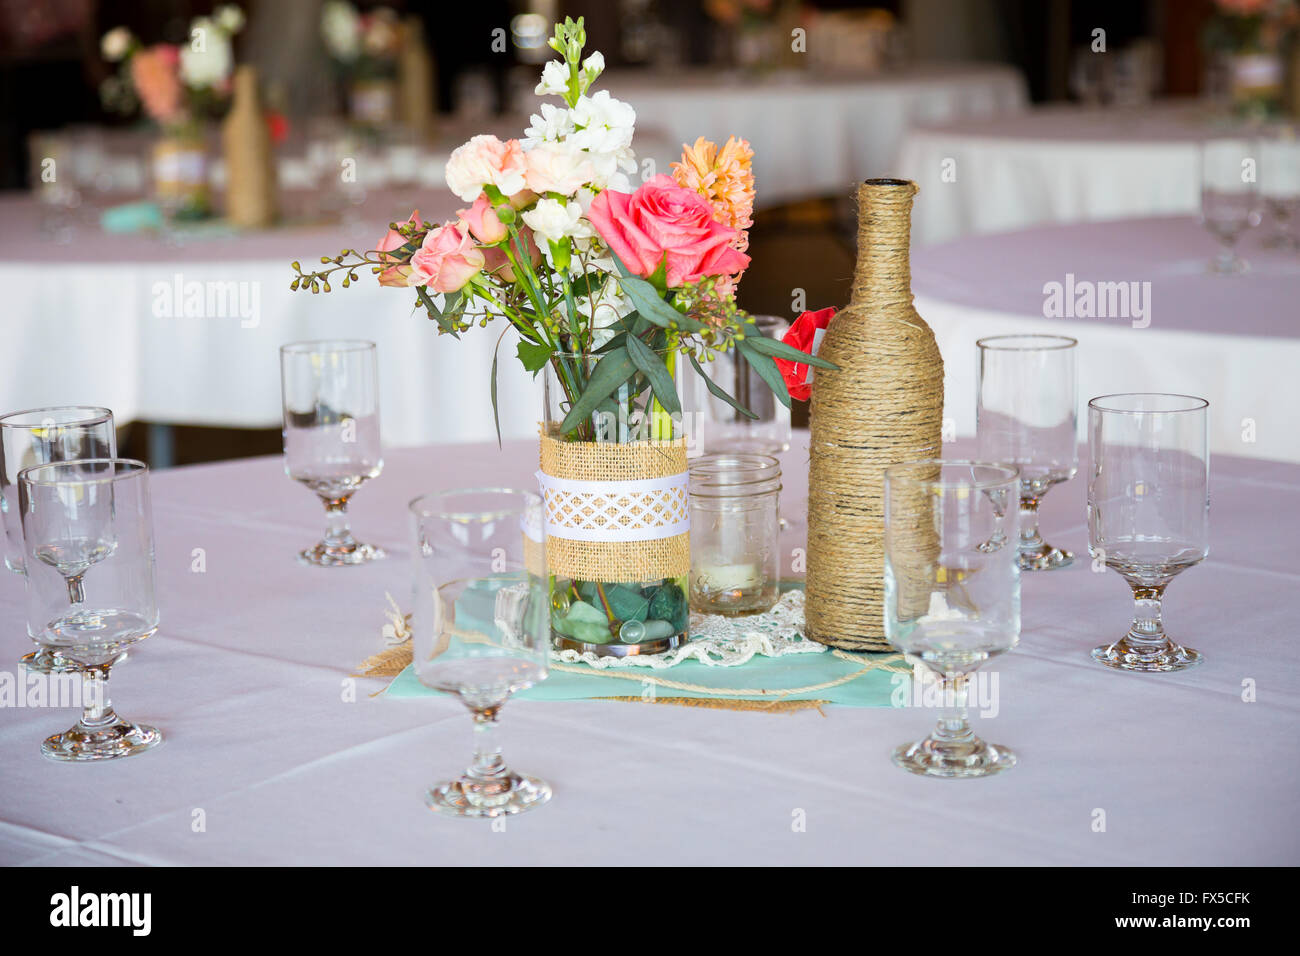 Diy Wedding Decor Table Centerpieces With Wine Bottles Wrapped In